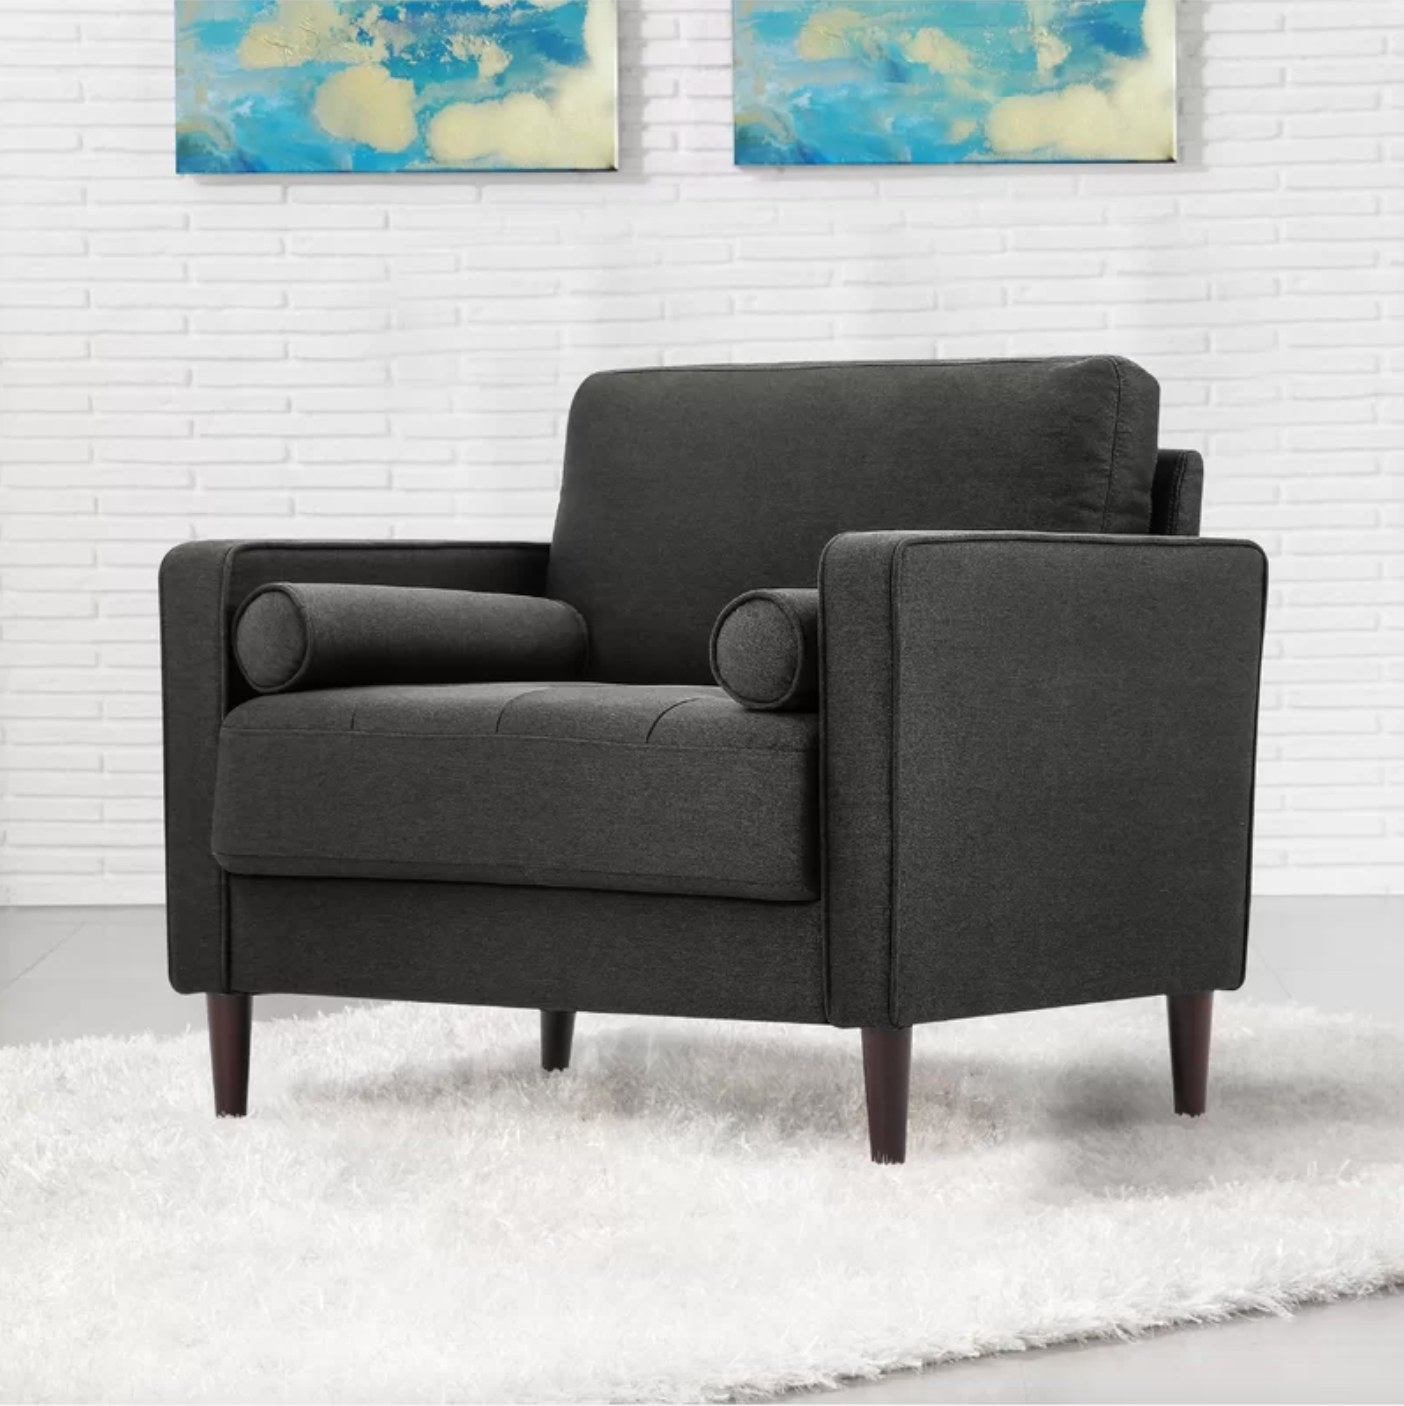 The club chair in heather gray